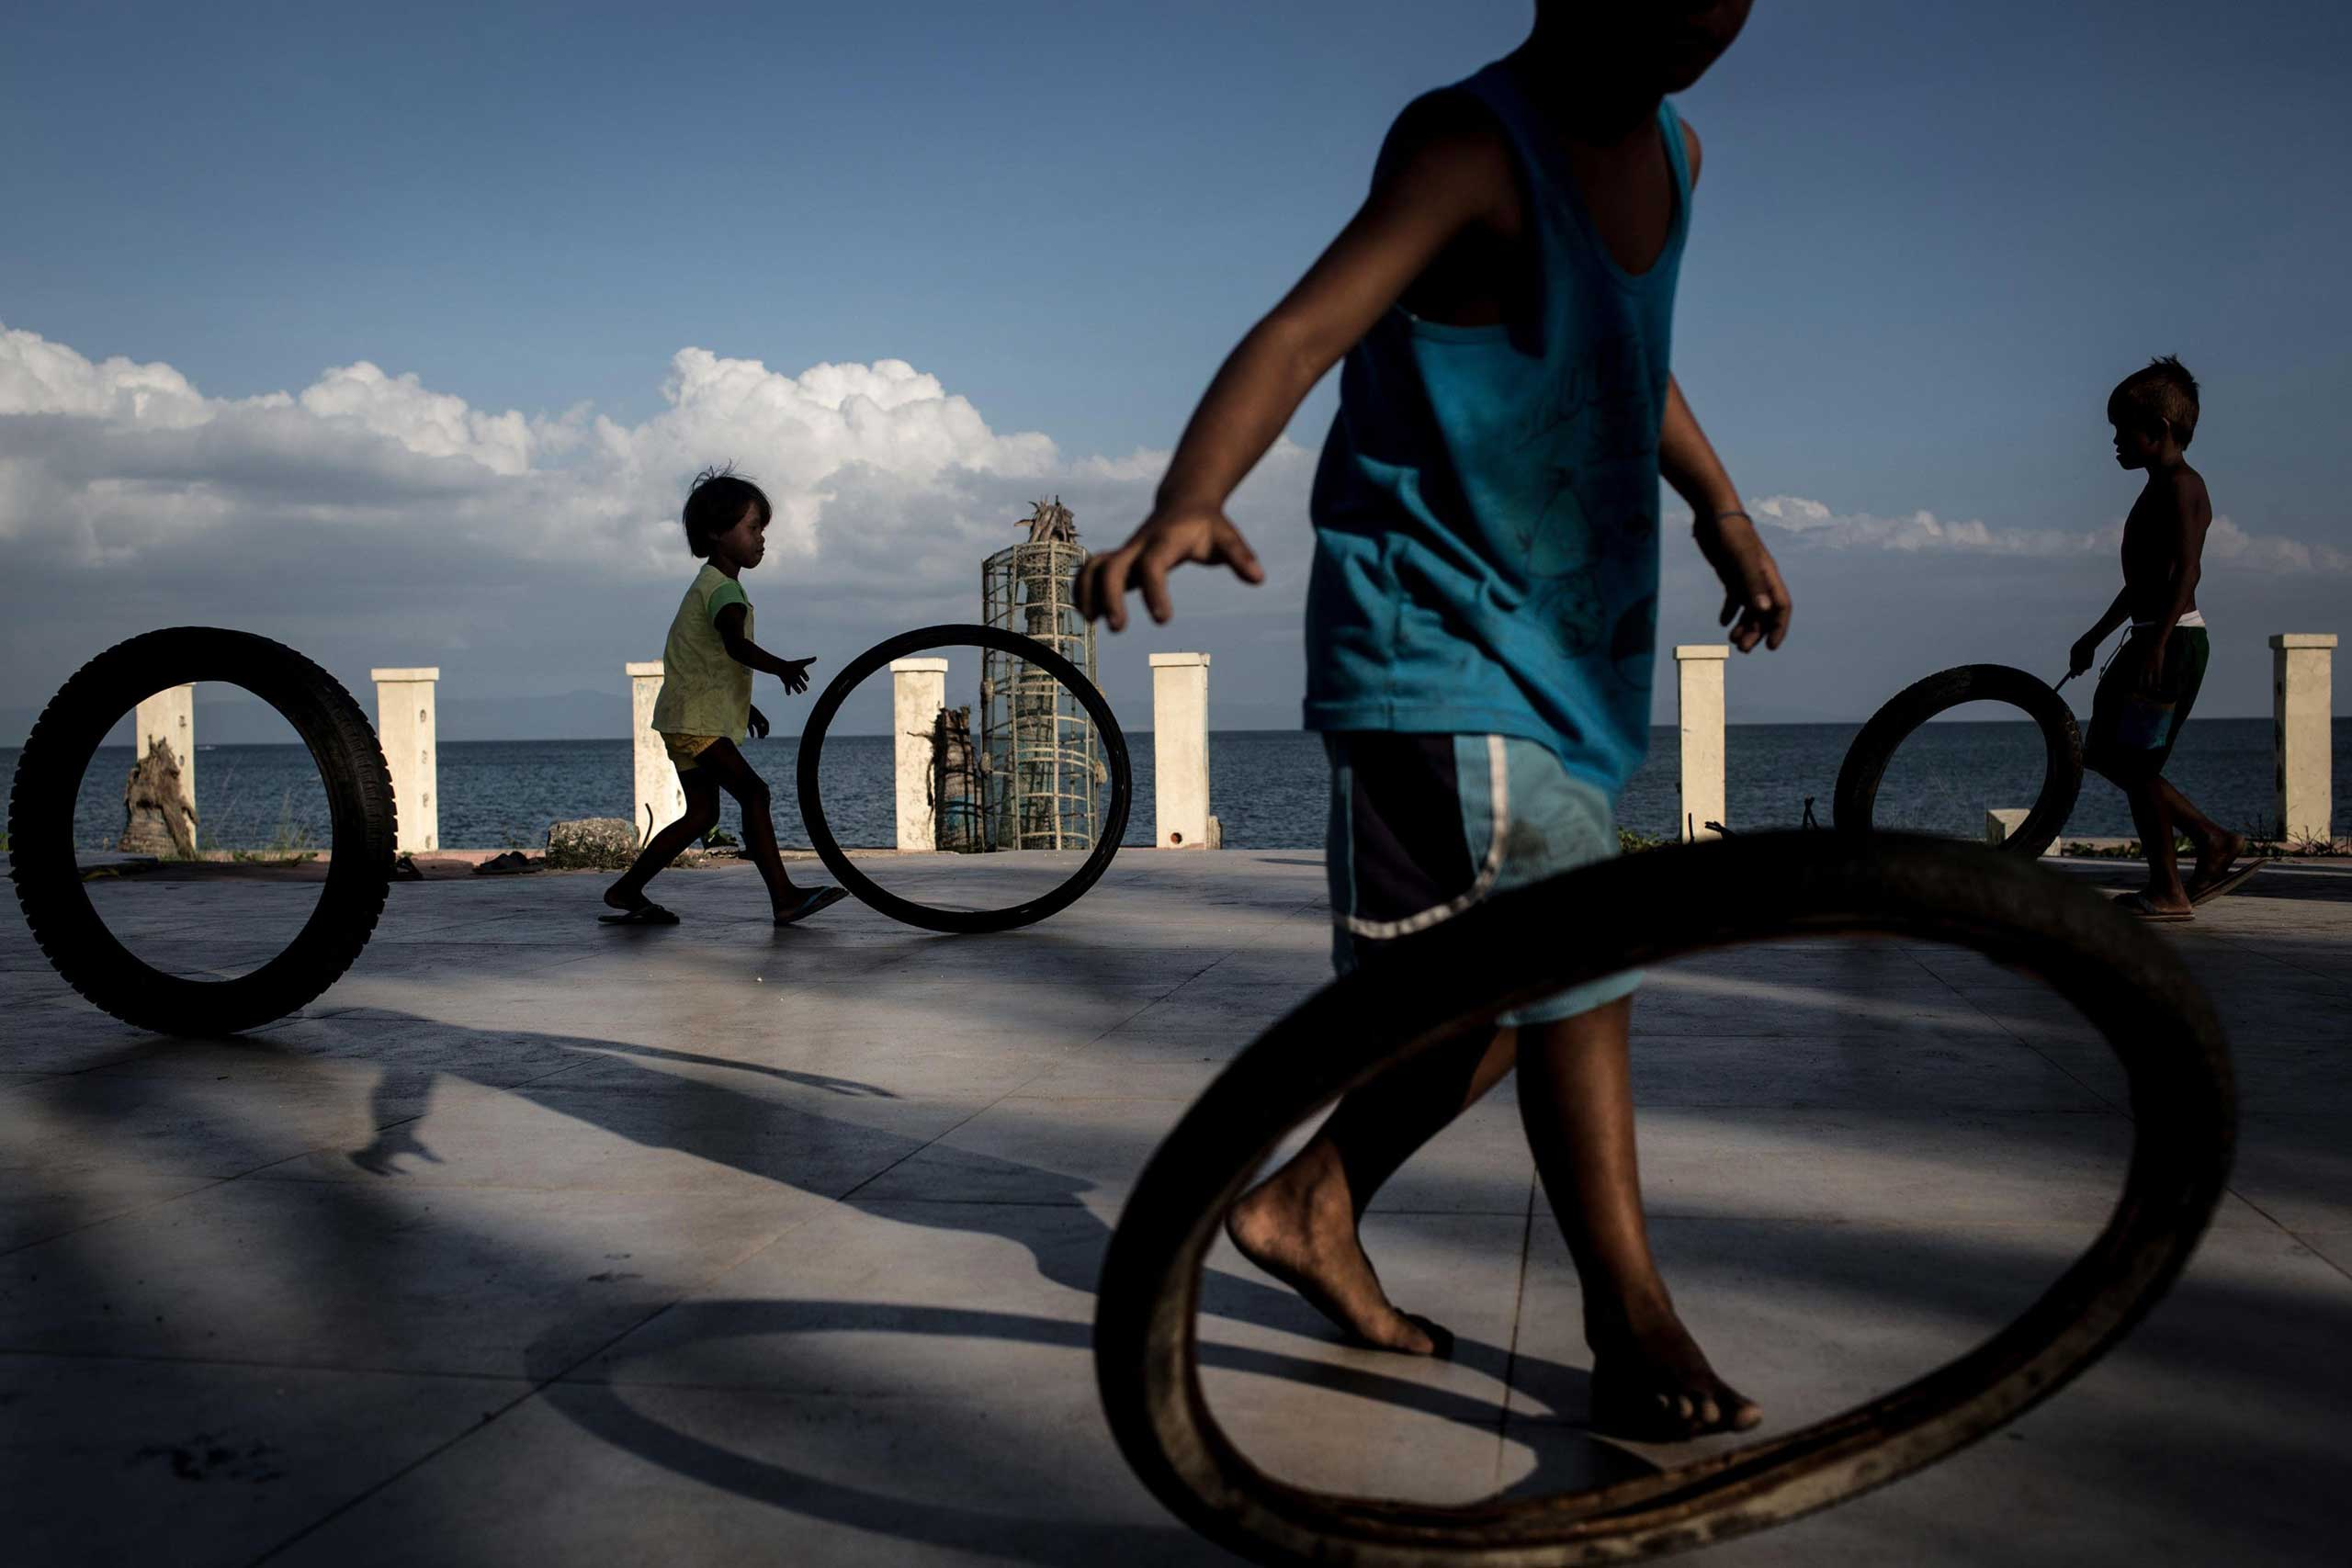 Nov. 6, 2014. Children play with bike tires in a destroyed resort building on the coastline at San Jose in Tacloban, Leyte, Philippines. Residents of Leyte are preparing for the 1-year anniversary since Super Typhoon Yolanda struck the coast on November 8, 2013, leaving more than 6000 dead and many more homeless.